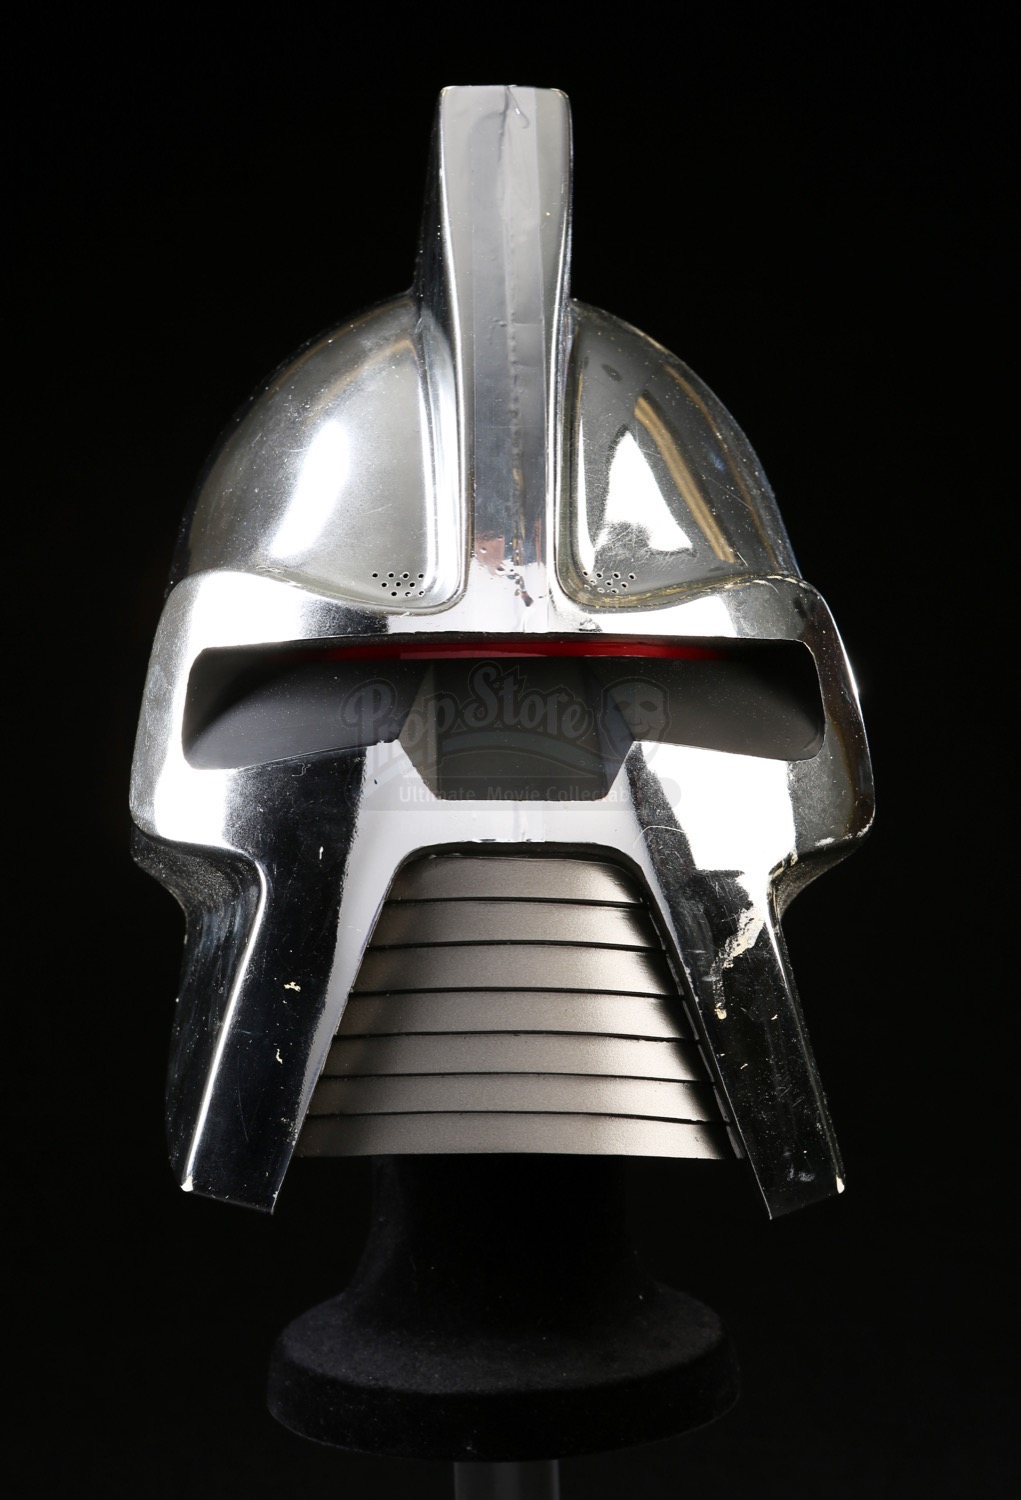 home interior catalog 2015 with Battlestar Galactica 1978 Cylon Centurion Helmet on Tray Aways Disposable Impression Trays as well 3748936 likewise Sears 264b234 likewise BATTLESTAR GALACTICA 1978 Cylon Centurion Helmet moreover Laffing Sal.